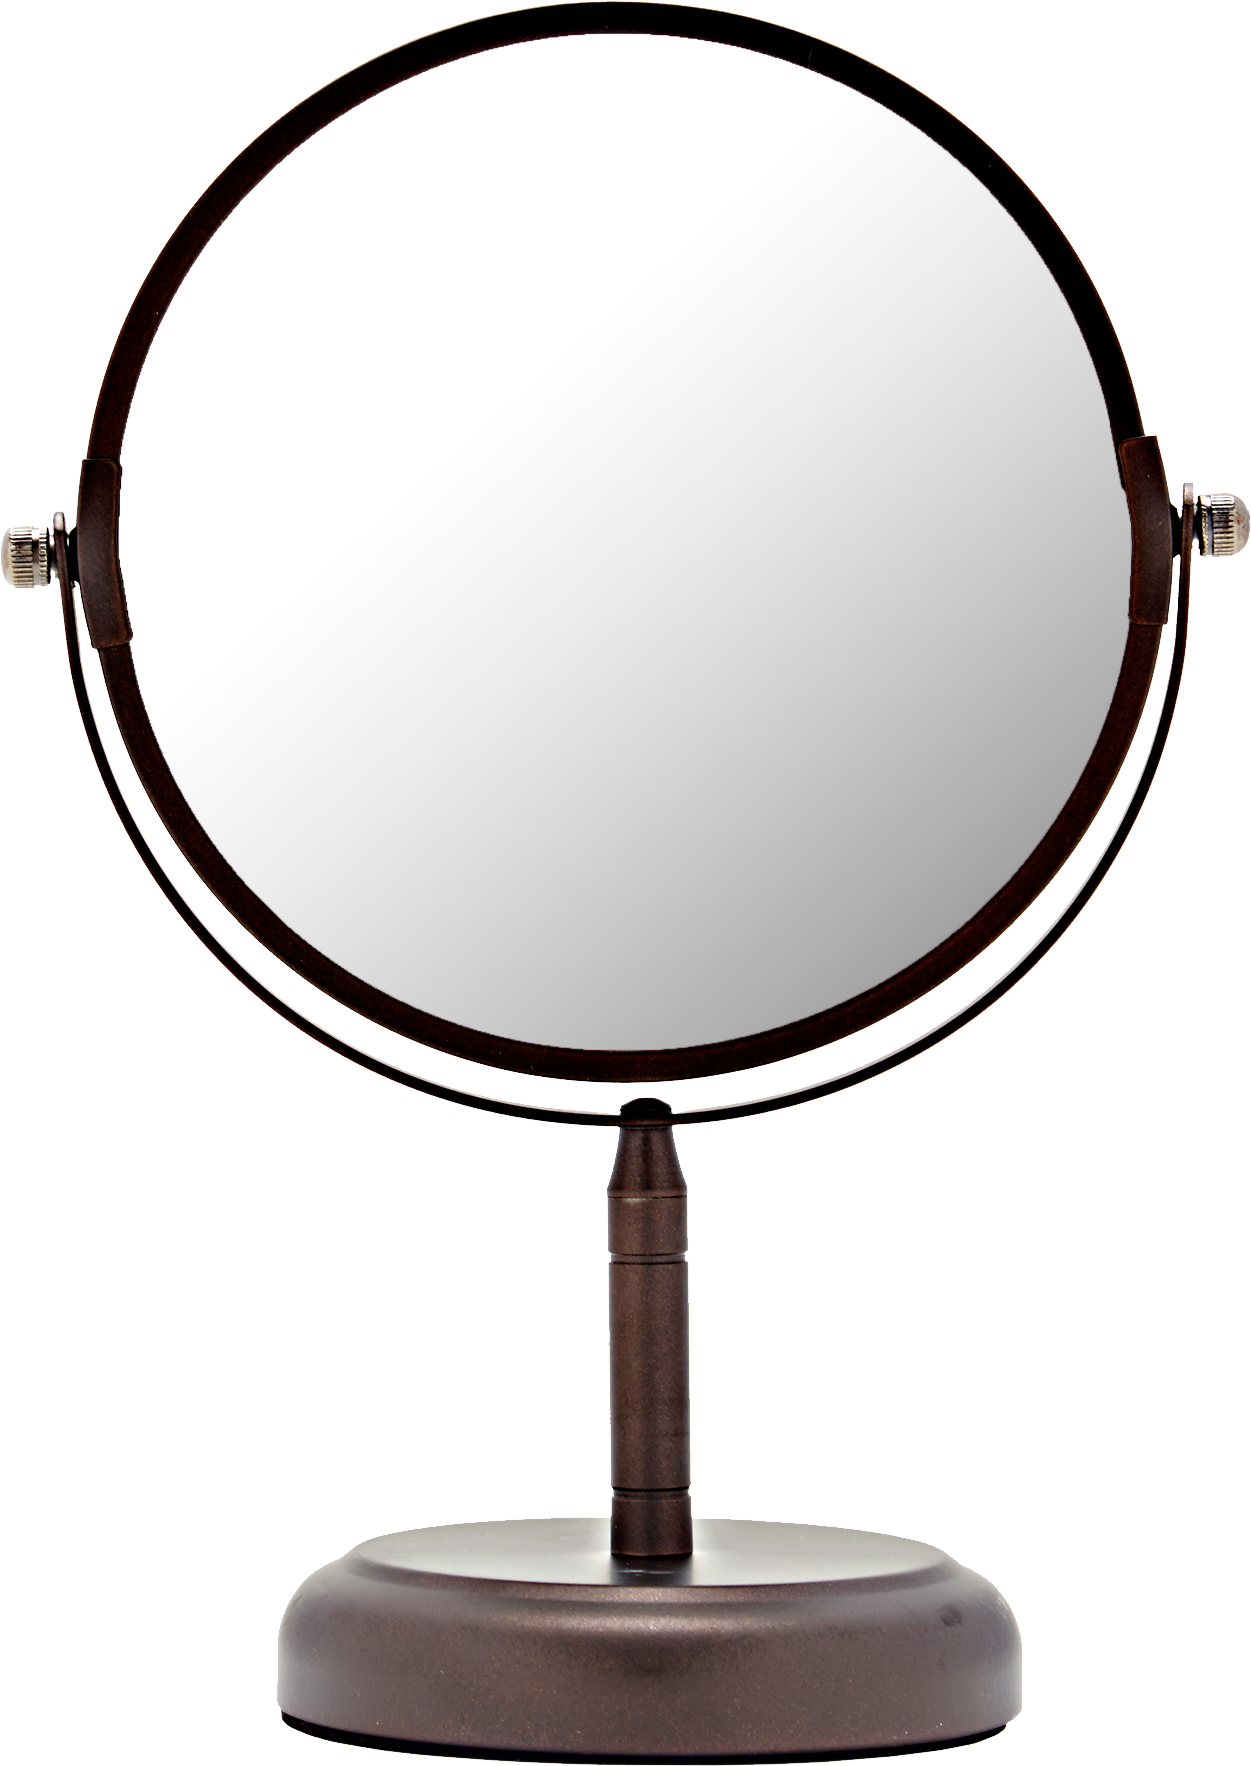 royalty free stock Makeup clipart vanity mirror. Awesome high reflective silver.